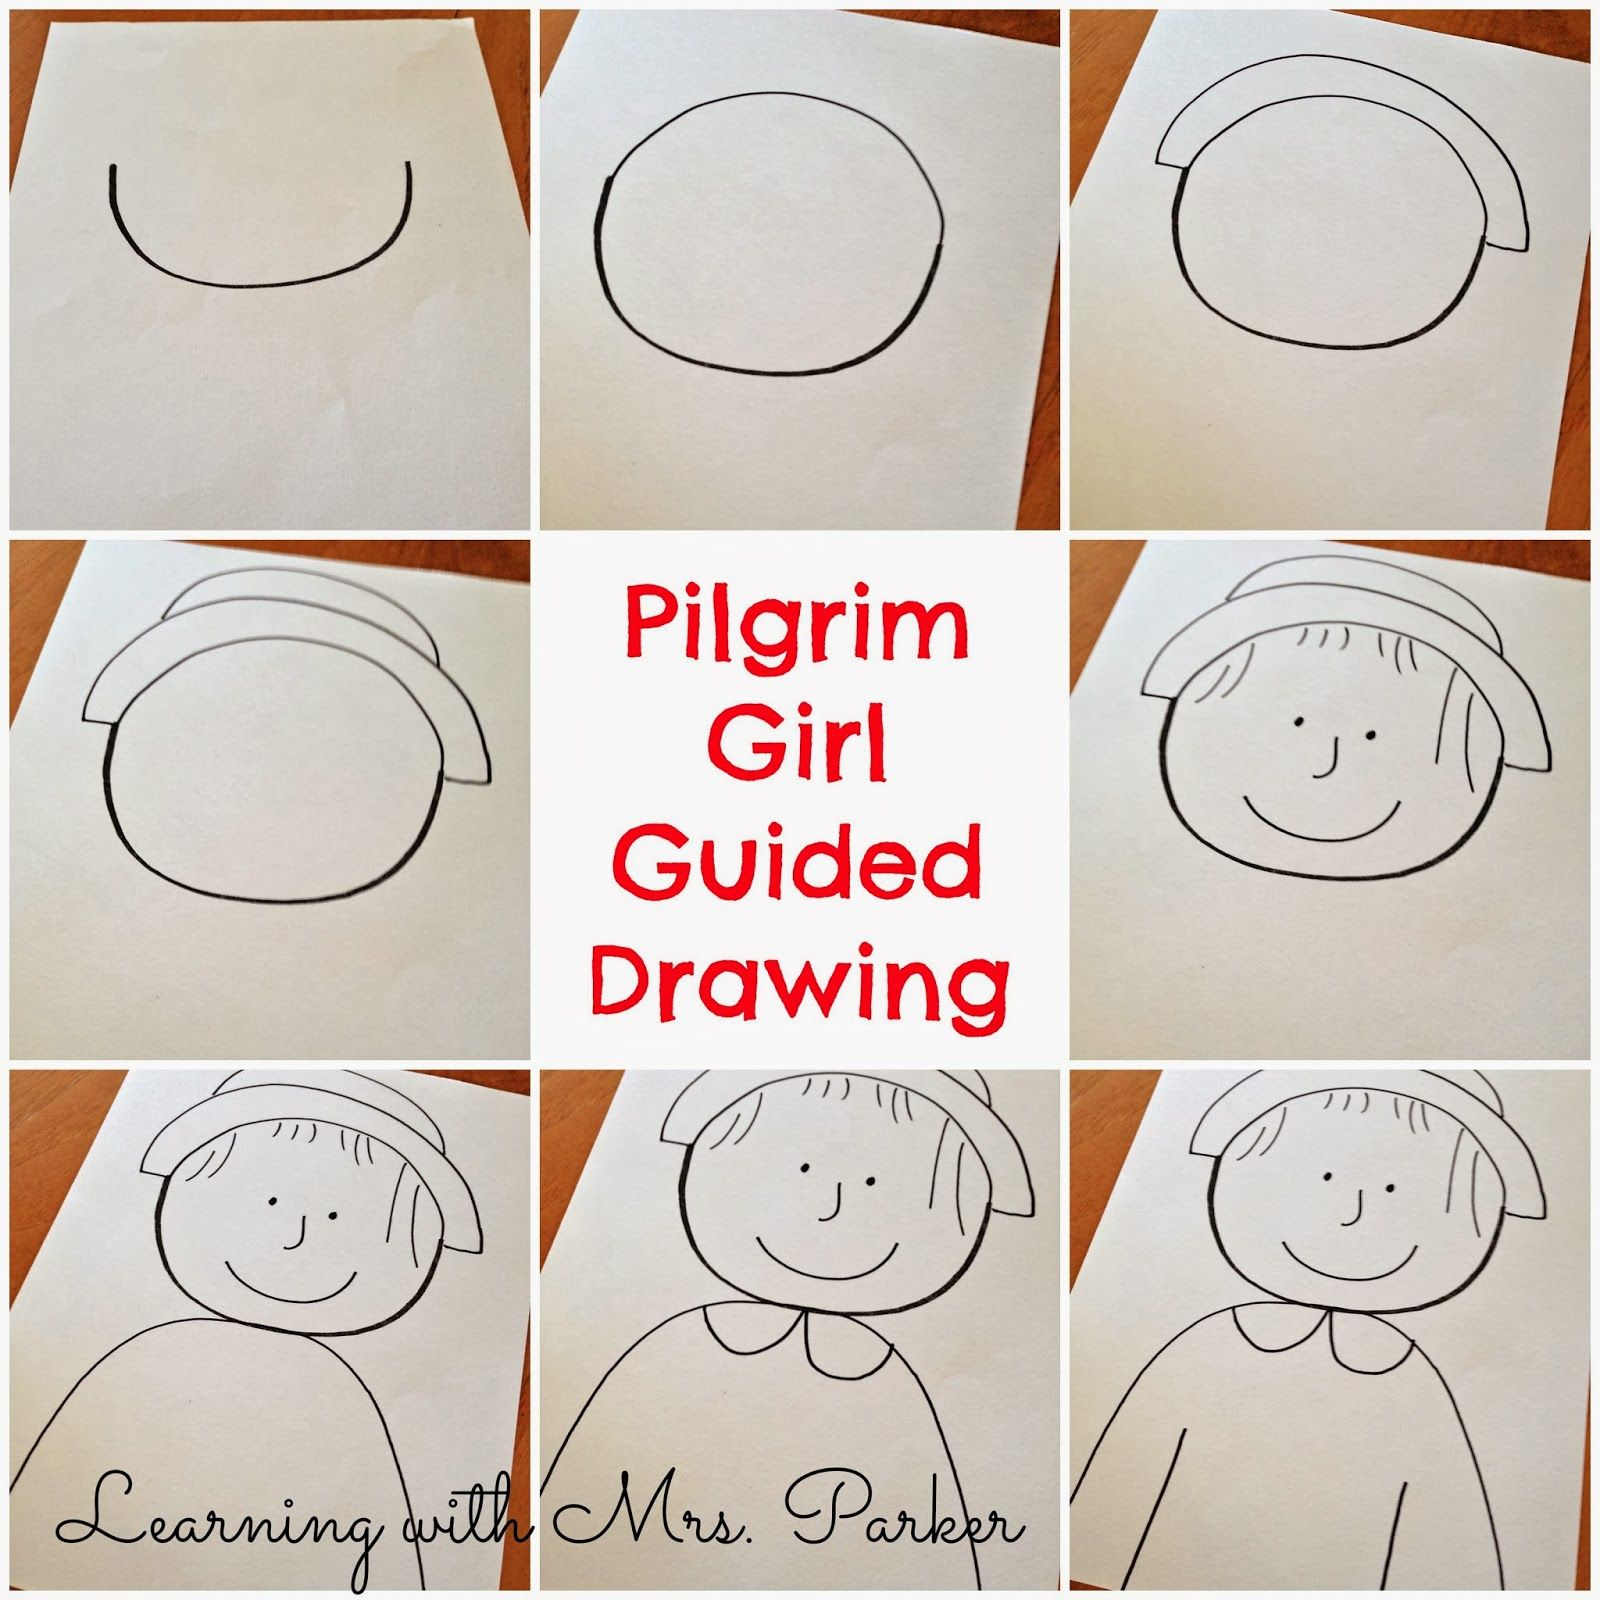 A Step By Visual Guide Of How To Draw Pilgrim Boy And Girl As